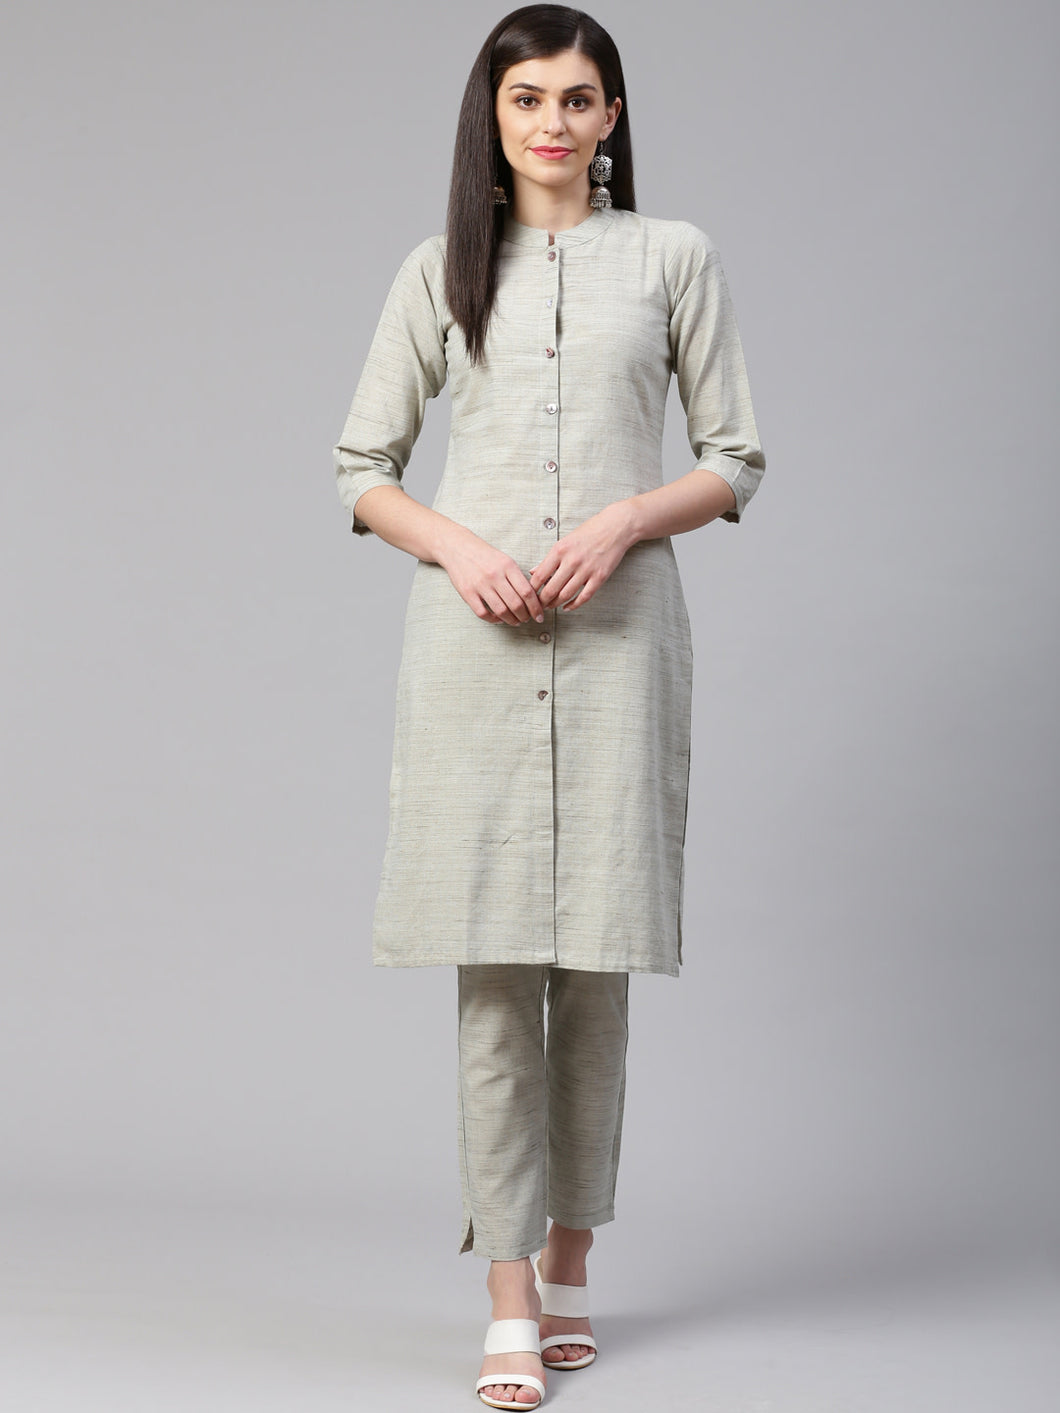 Jompers Women Grey Woven Design Kurta with Trousers (JOKS 1332 Grey)